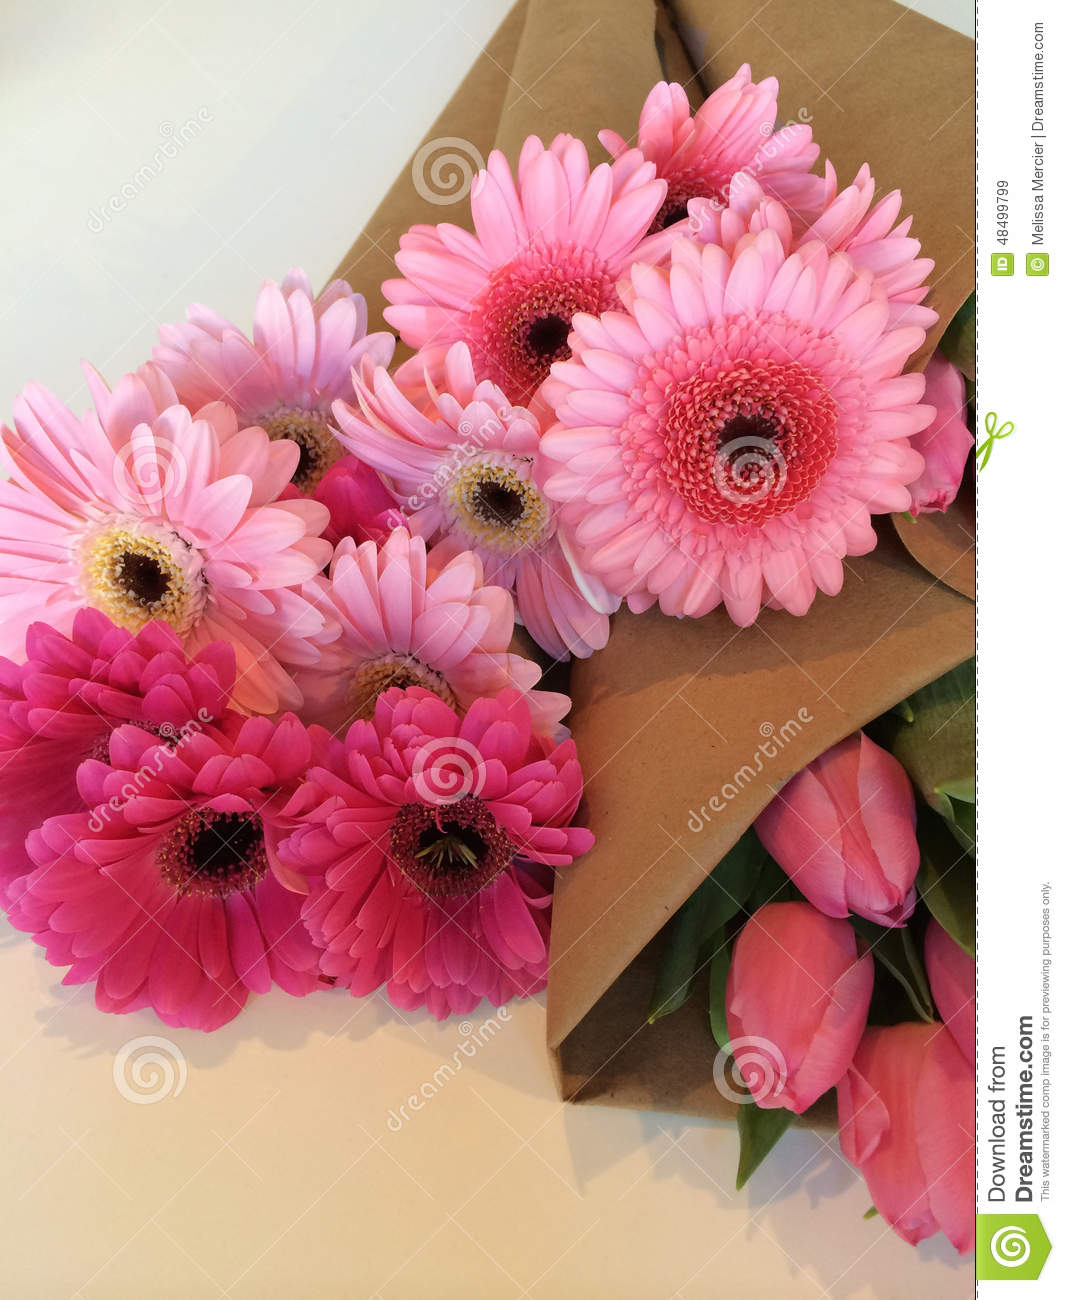 Wrapped Flower Bouquets Stock Image Image Of Flowering 48499799